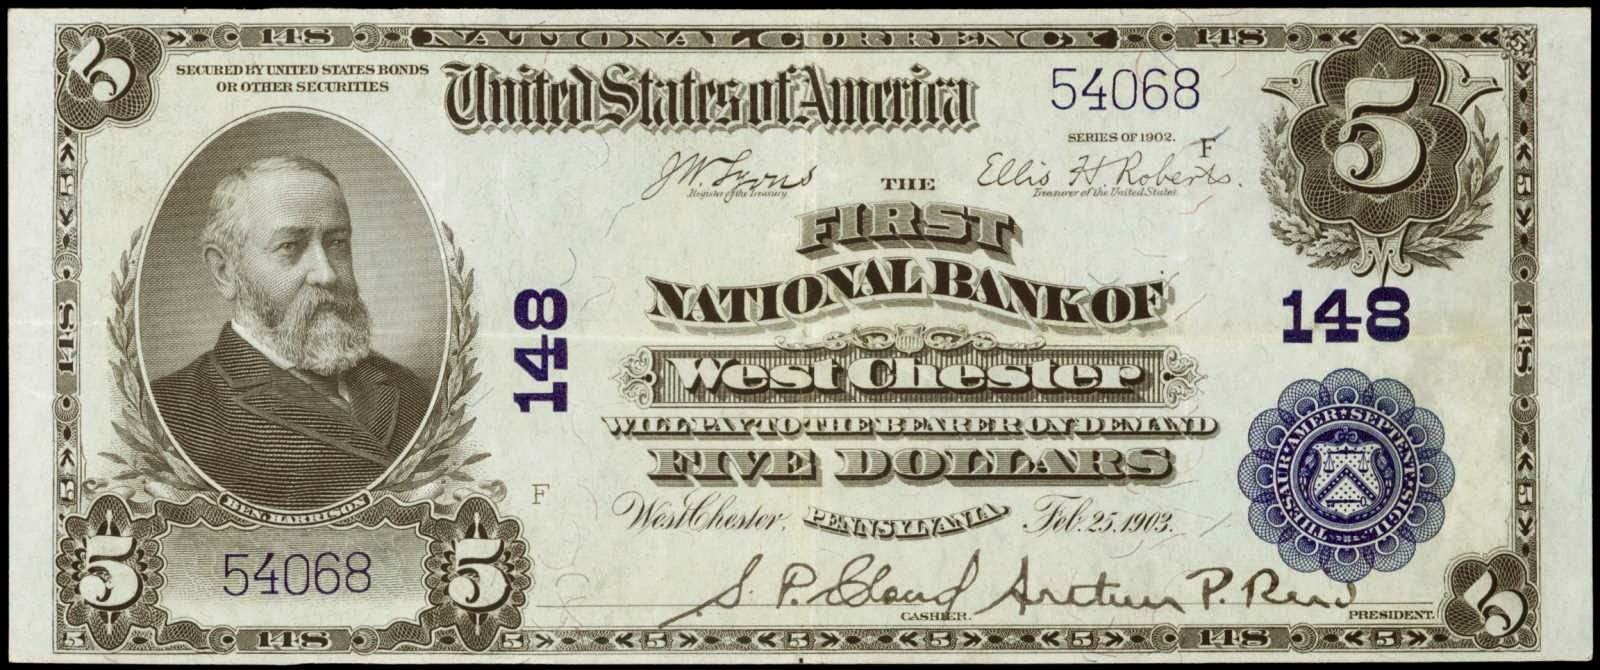 1902 5 Dollar bill national bank notes